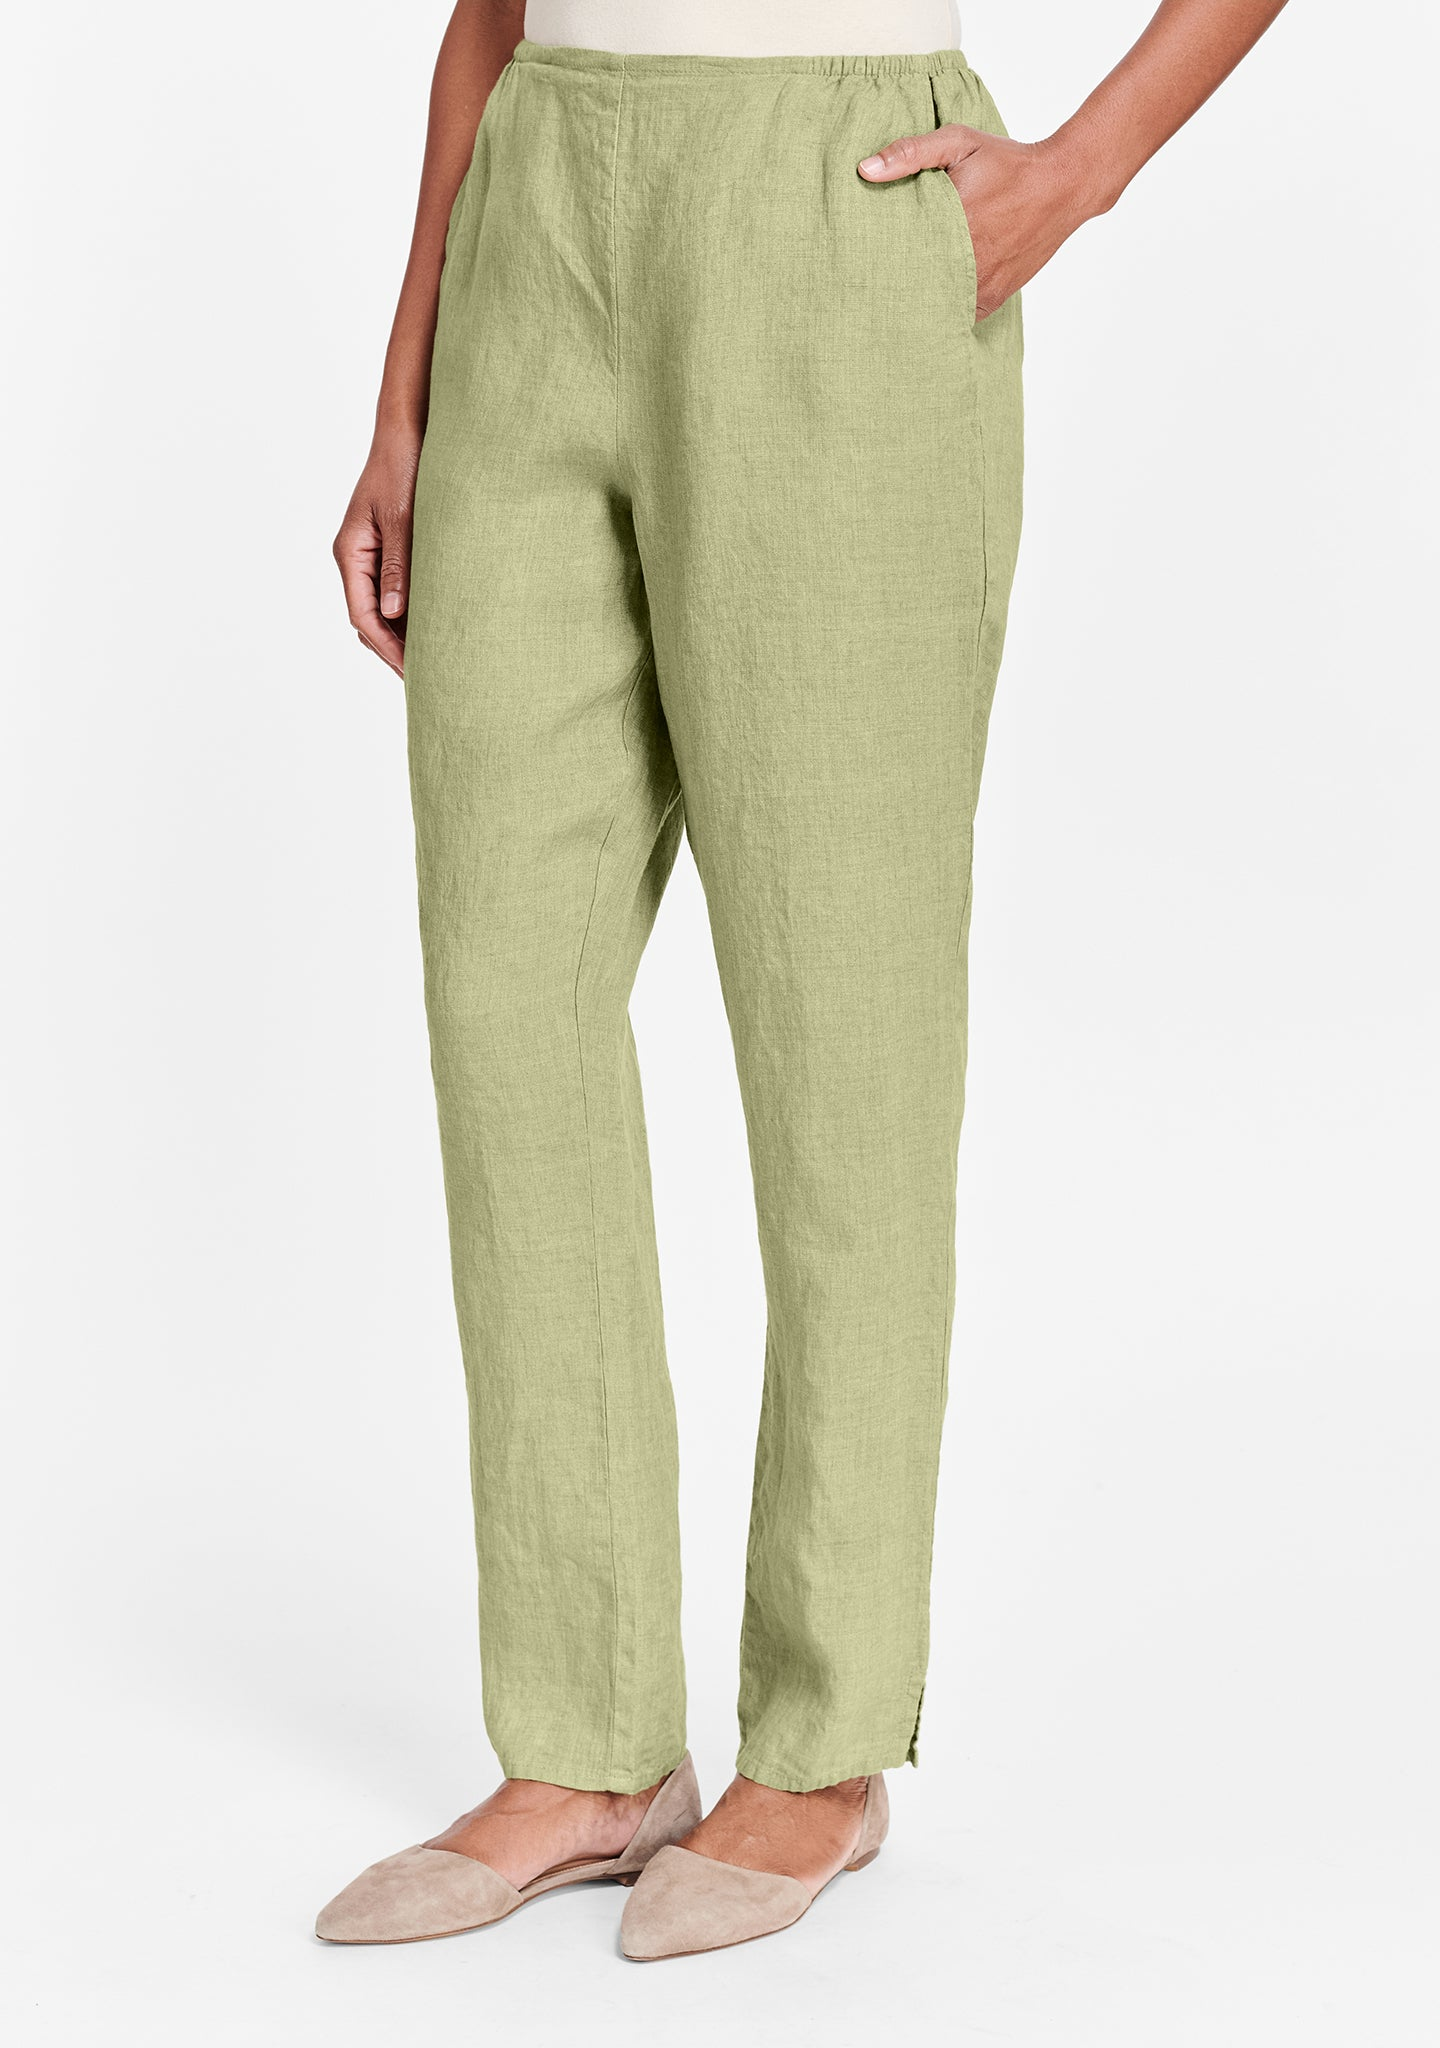 pocketed social pant green